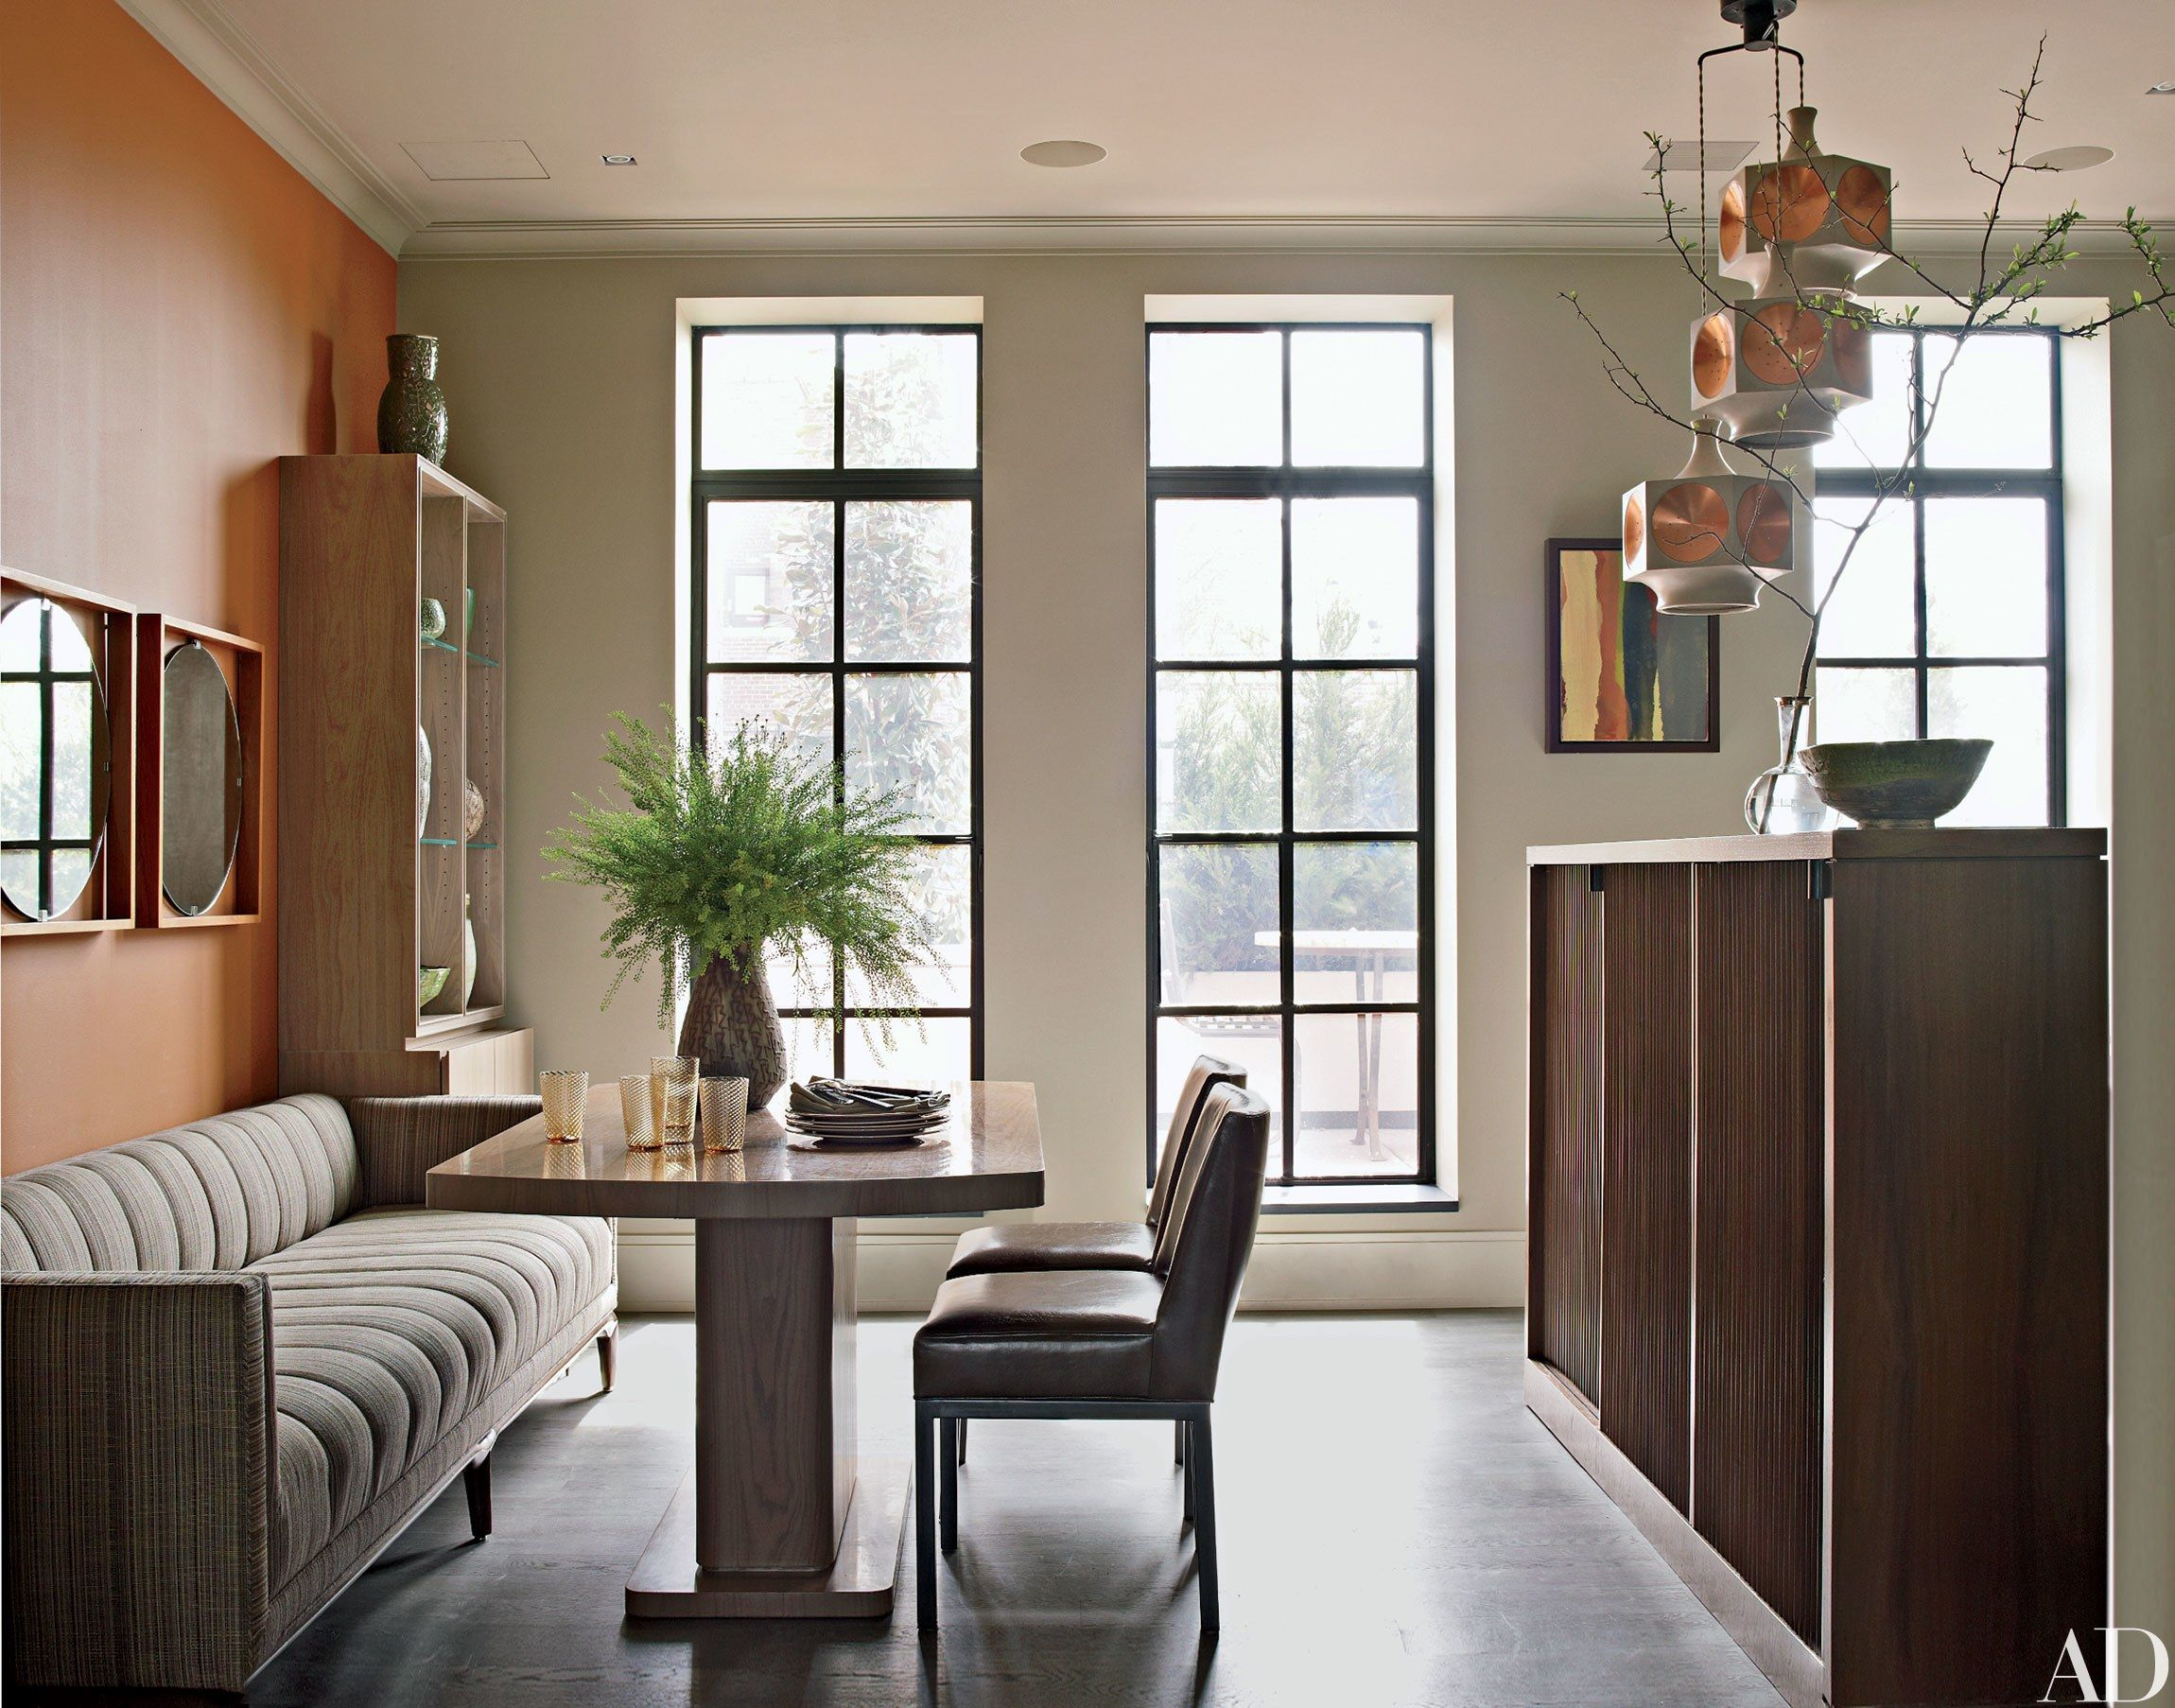 nook reveal of ideas kitchen park sunroom inspiration griffith